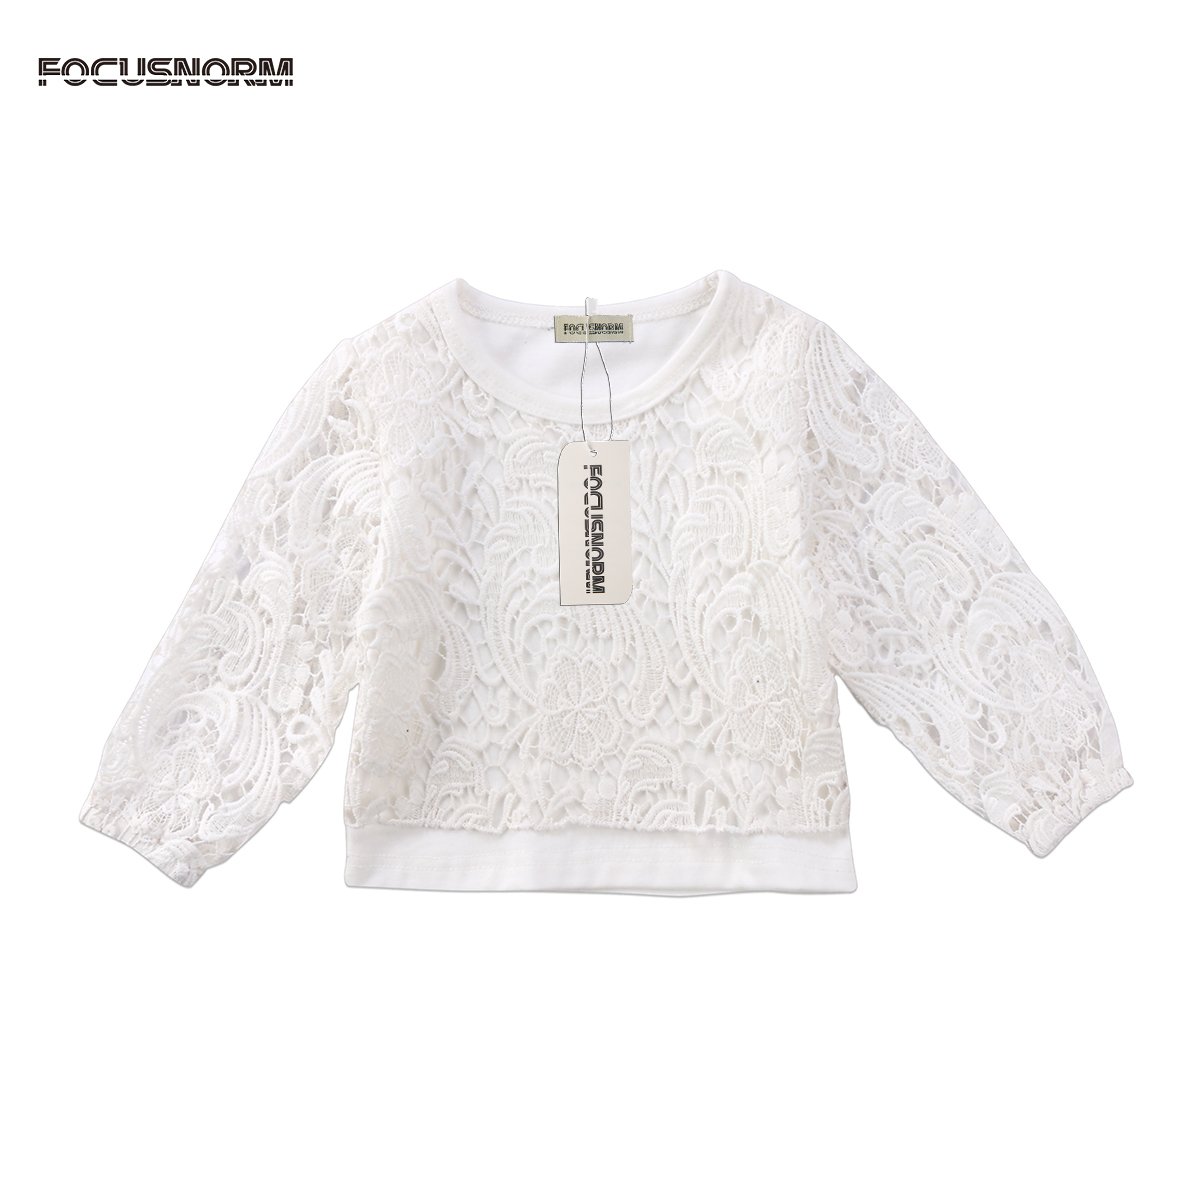 Fashion Newborn Kids Baby Girls Lace Flower Long Sleeves T-Shirt Hollow Out T-shirt Clothes Outfit